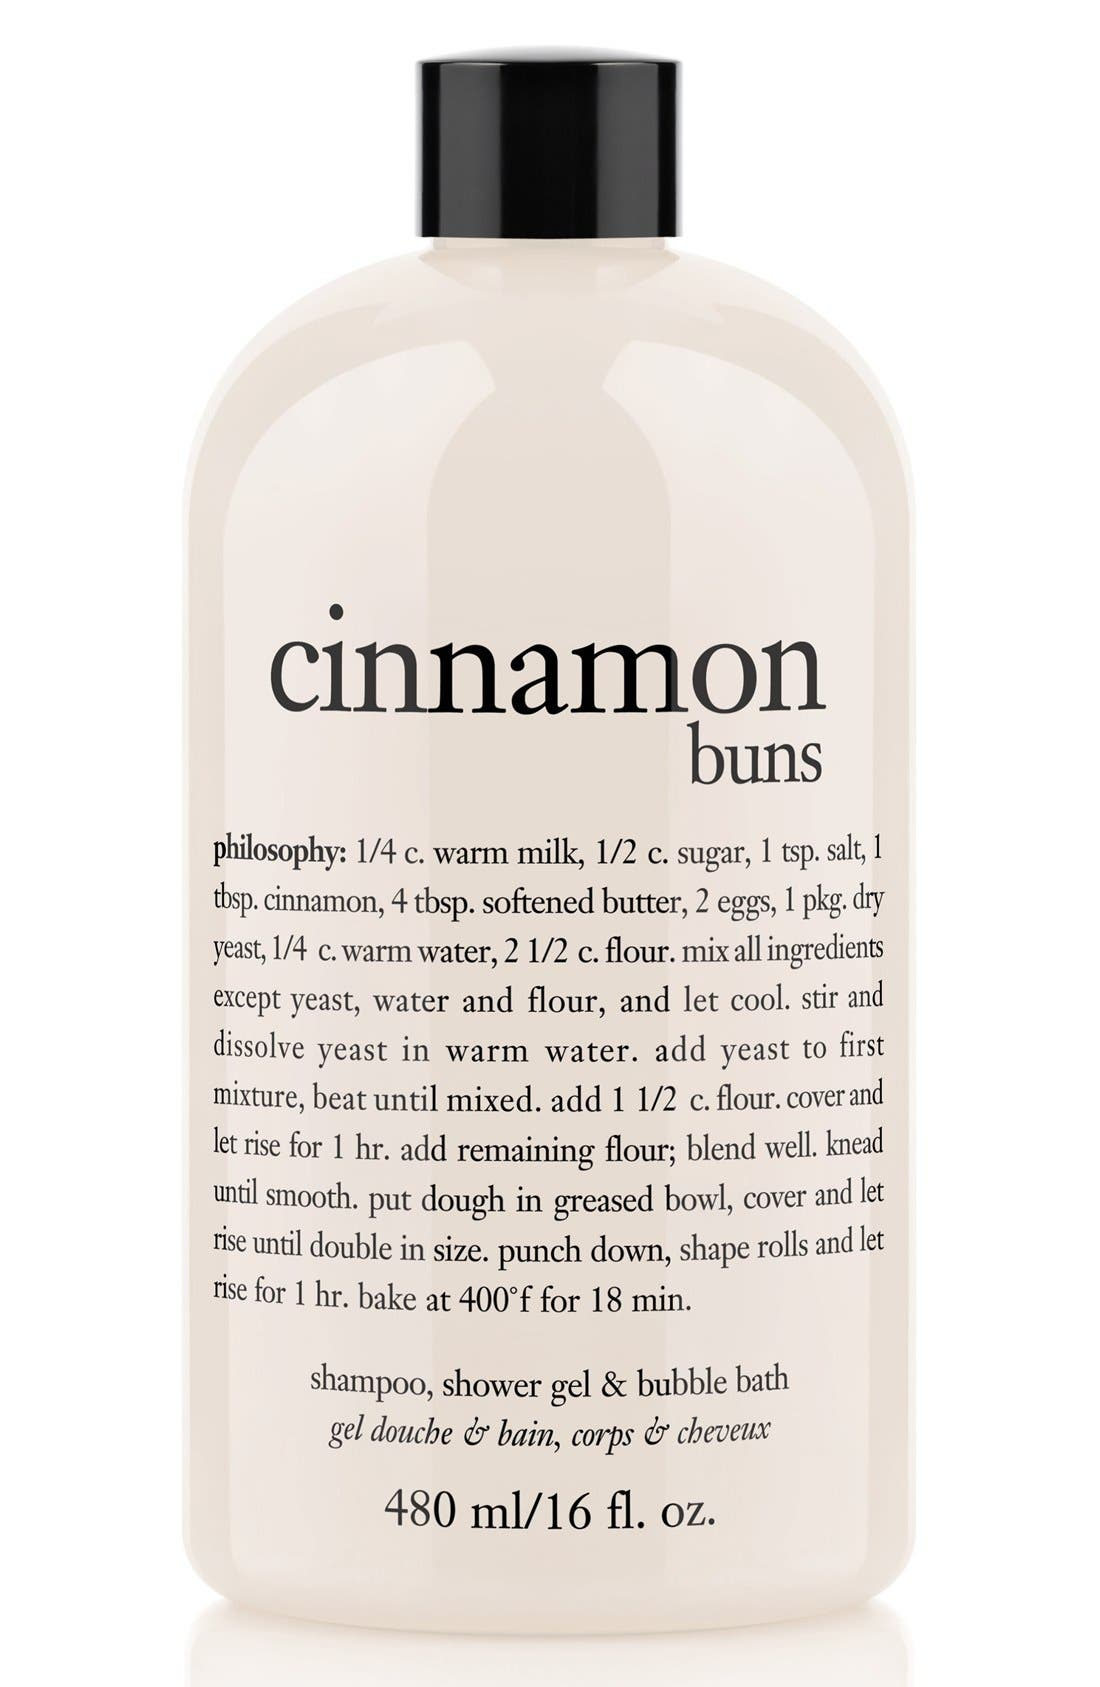 philosophy 'cinnamon buns' shampoo, shower gel & bubble bath